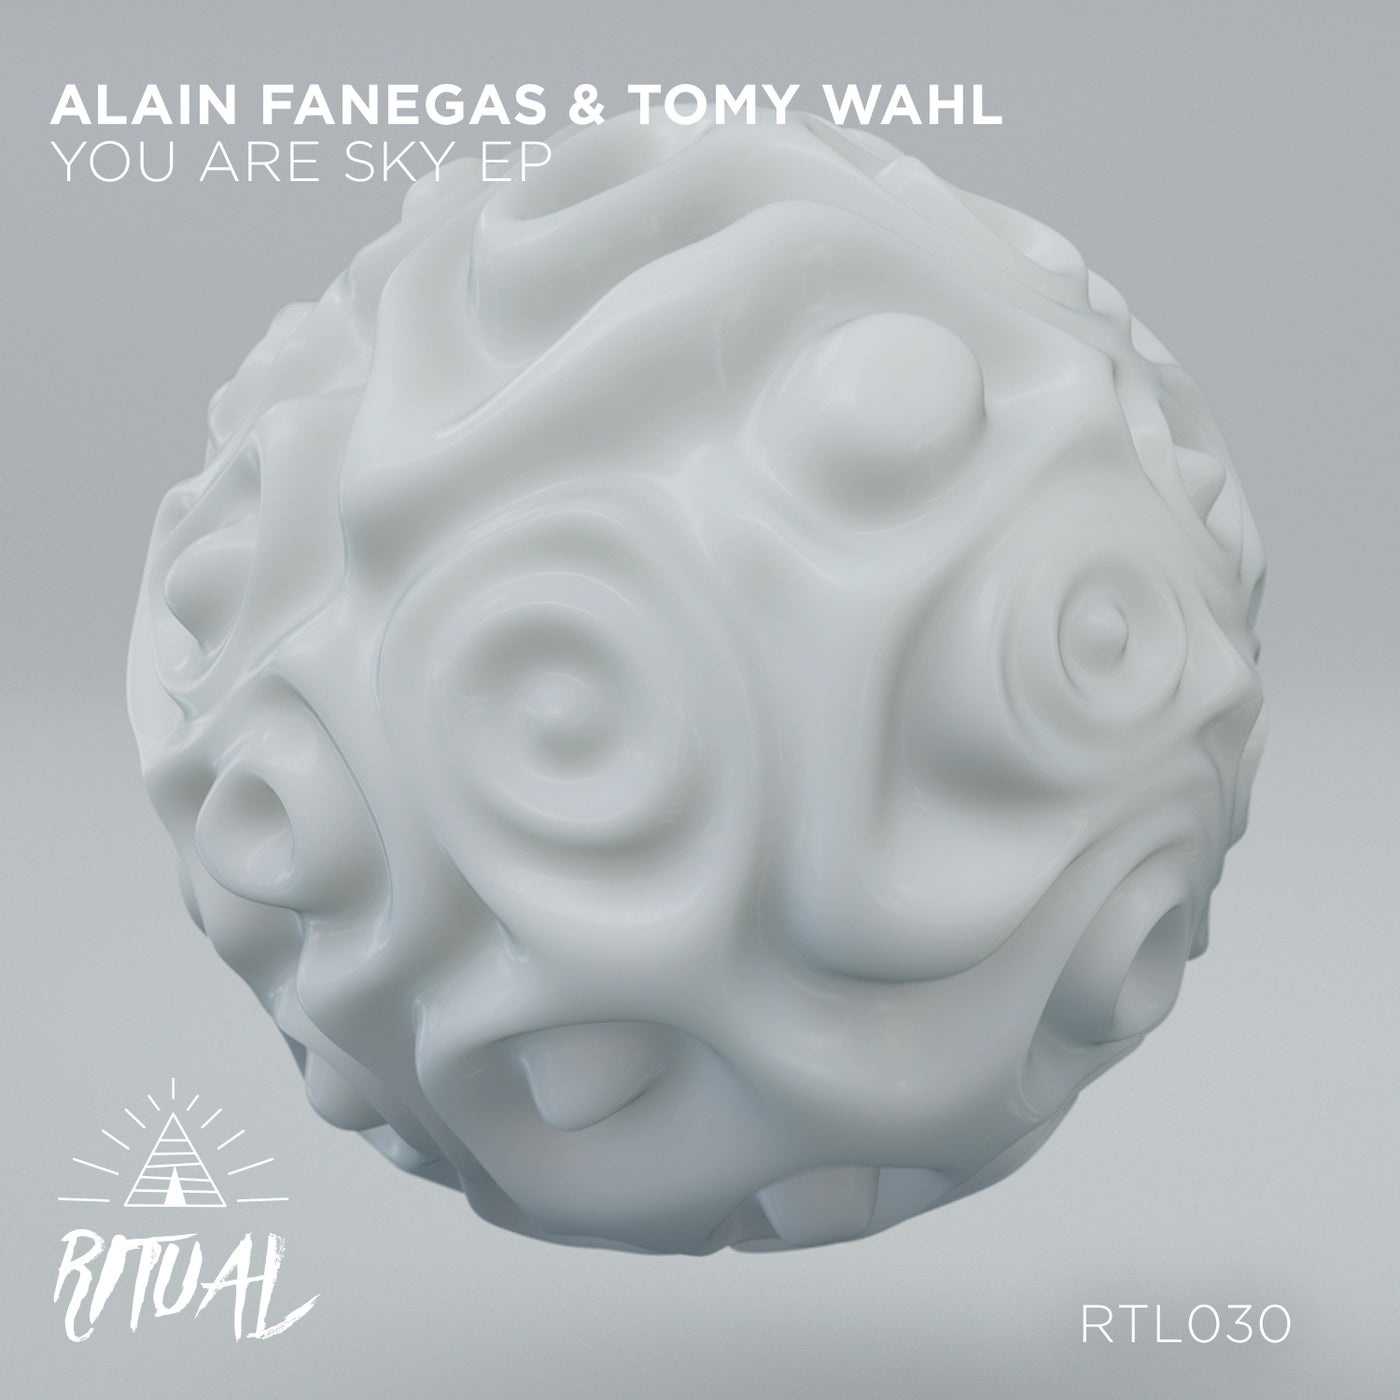 Cover - Tomy Wahl, Alain Fanegas - All The Pressure (Original Mix)